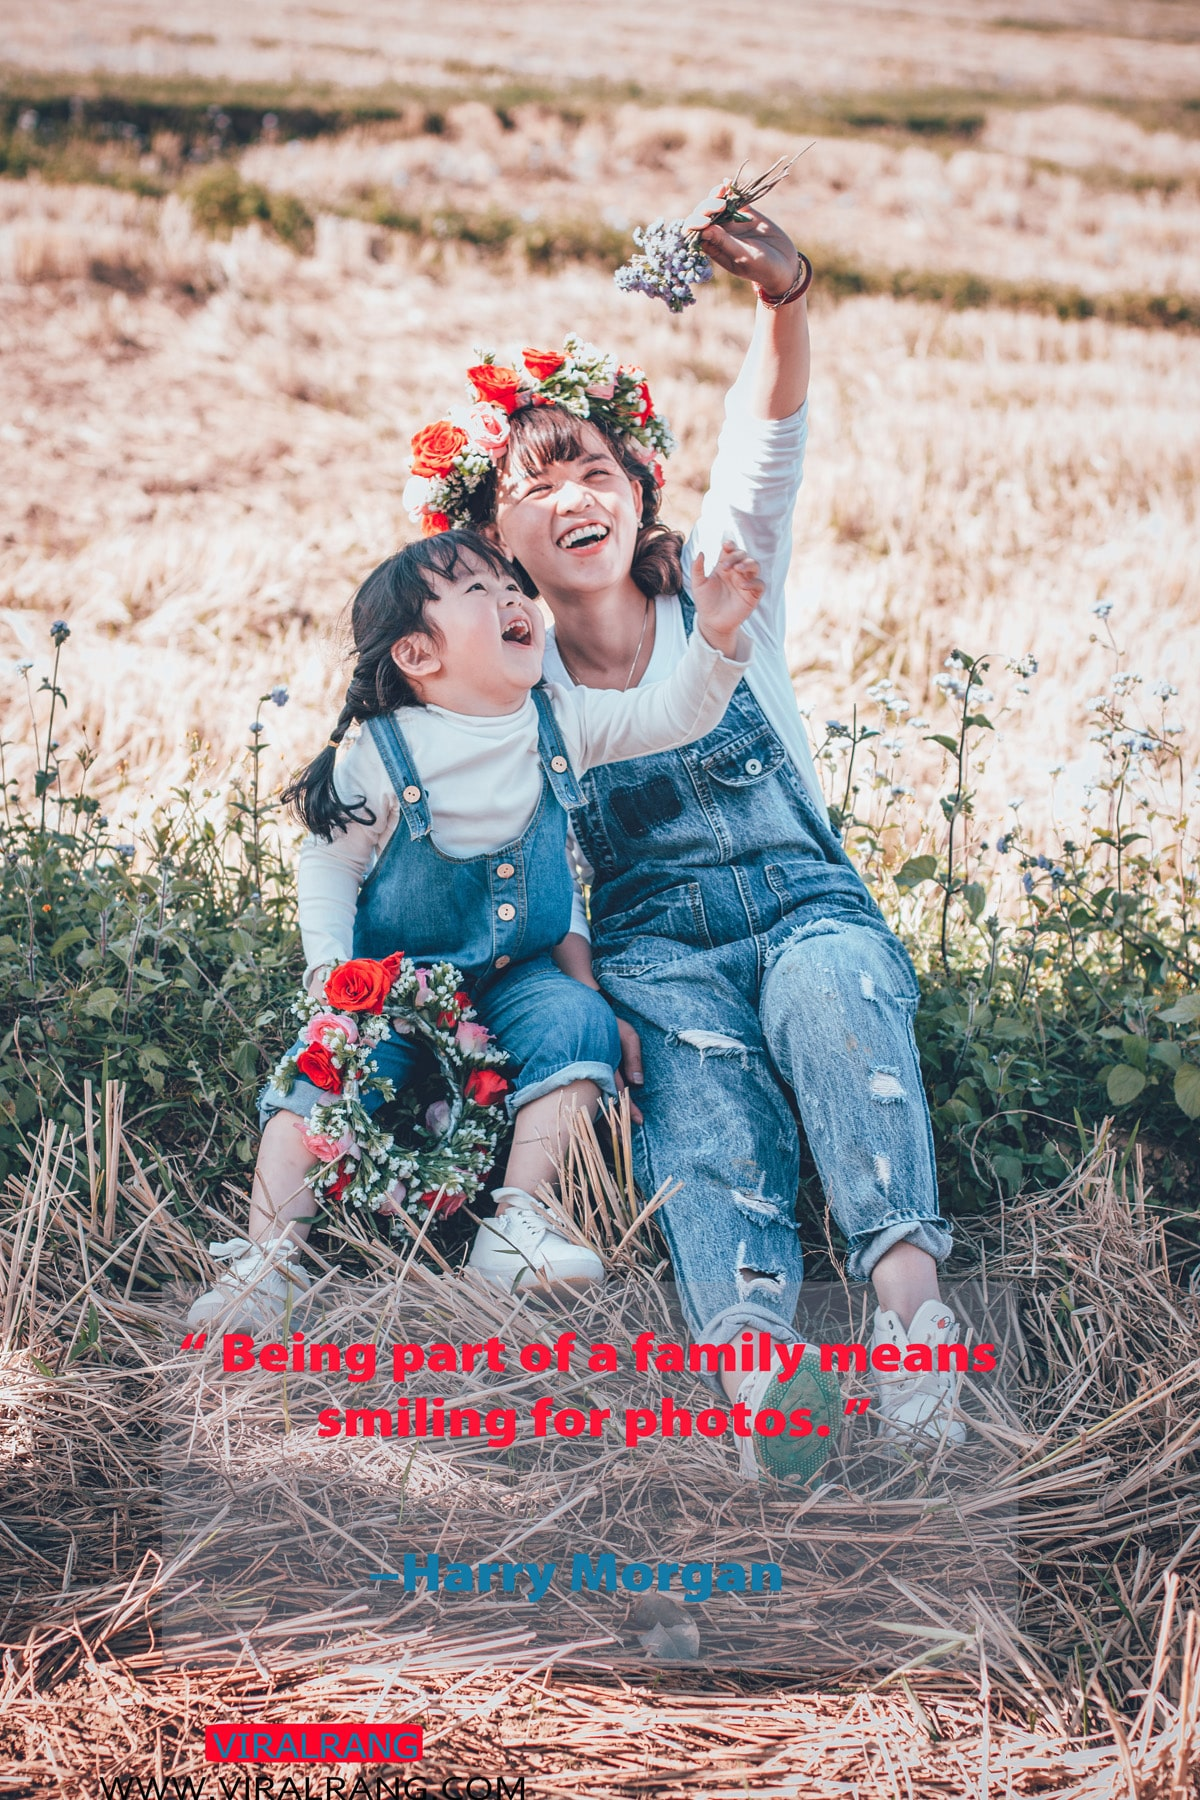 Being part of a family - Family Quotes